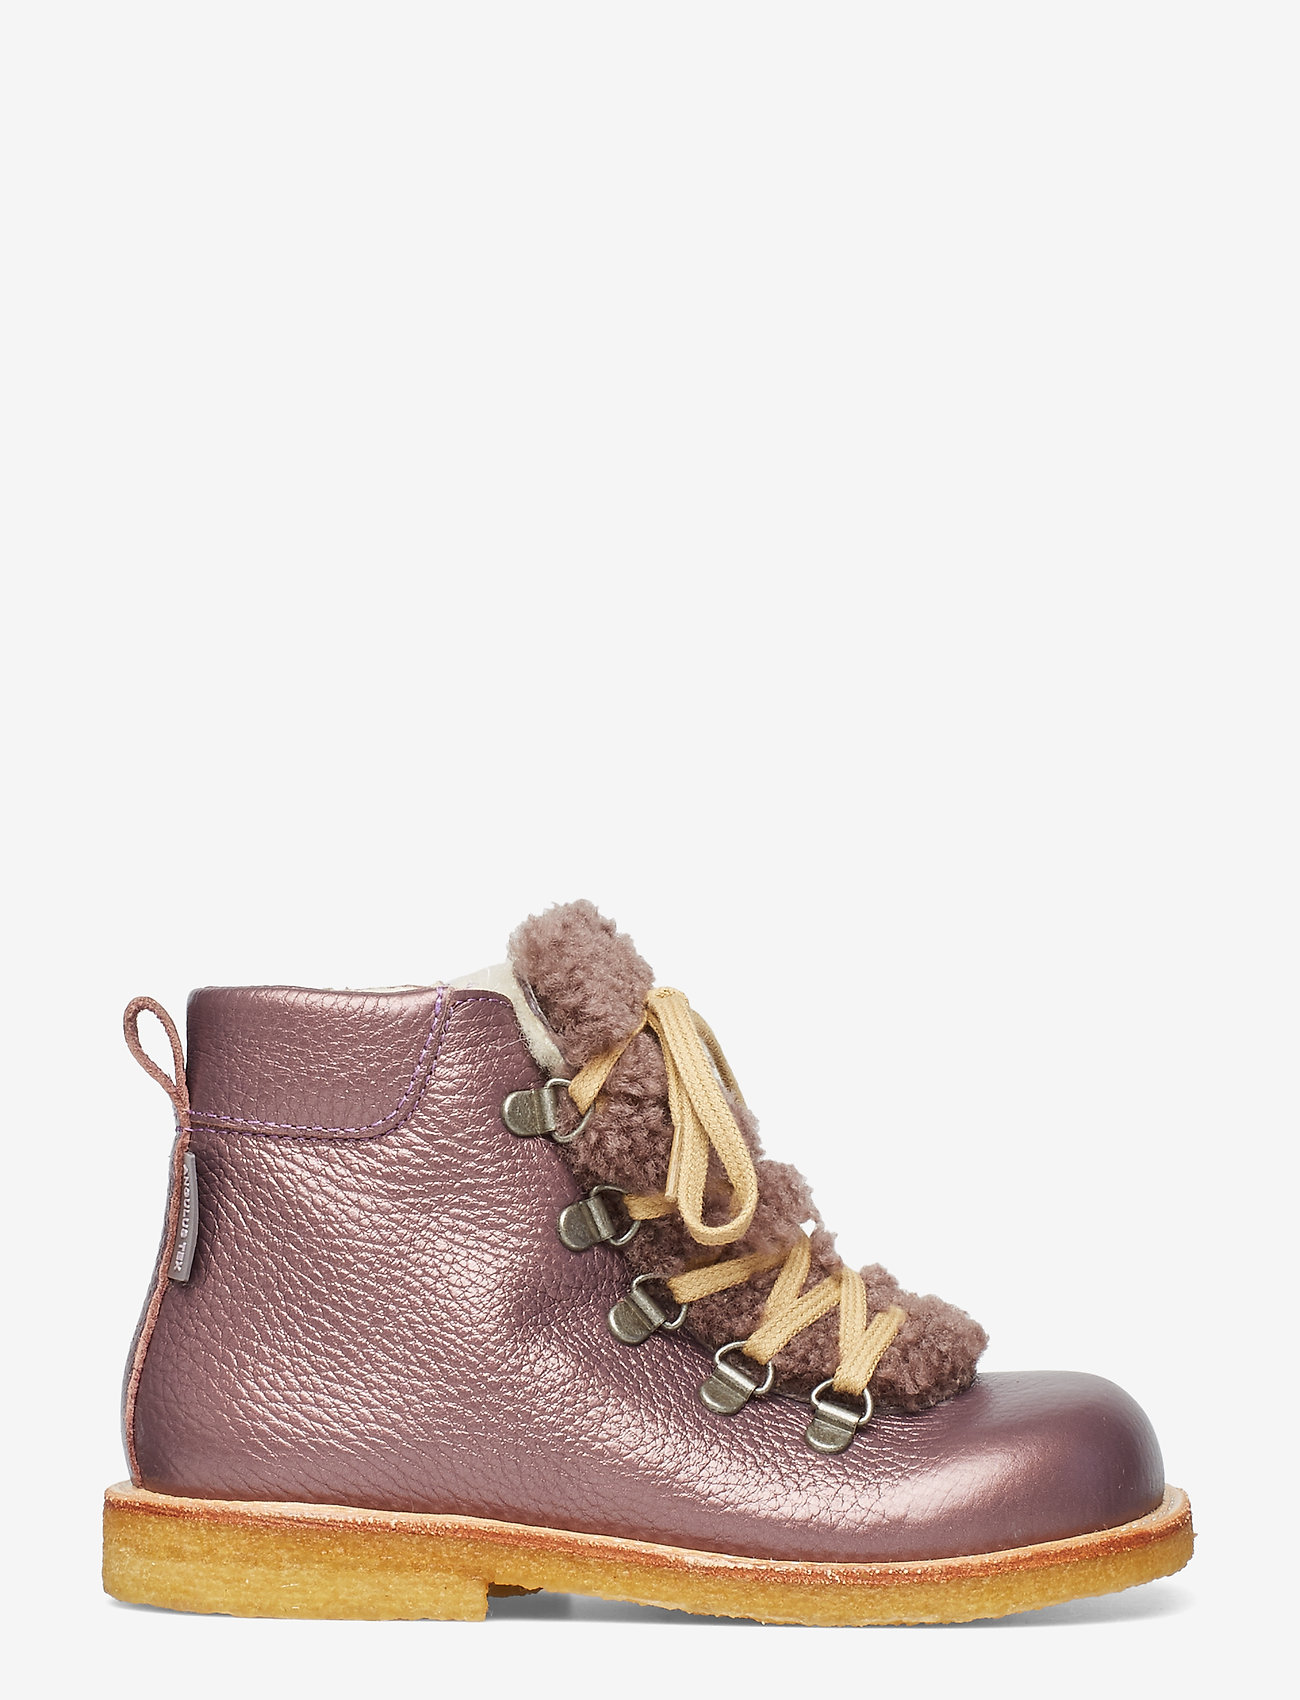 ANGULUS - Boots - flat - with lace and zip - winterstiefel - 1509/2029 lavender shine/lambs - 1